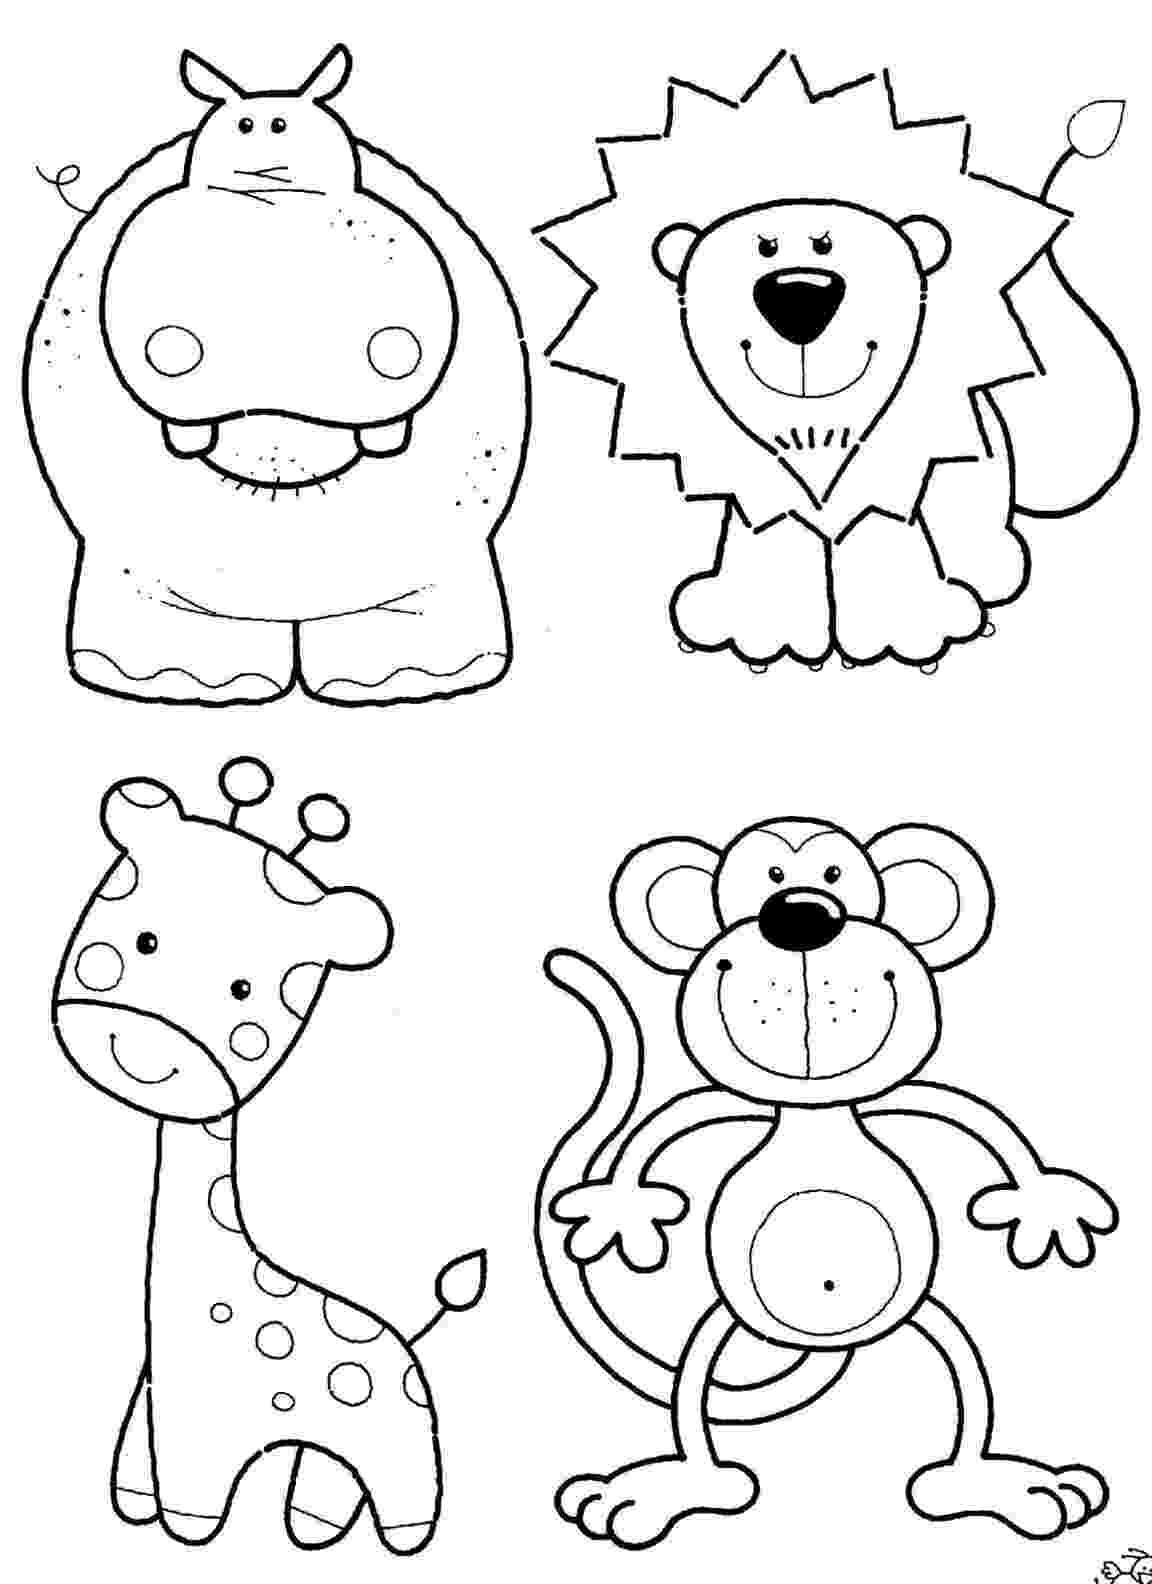 animal coloring pages to print jungle animal coloring pages to download and print for free animal pages print coloring to